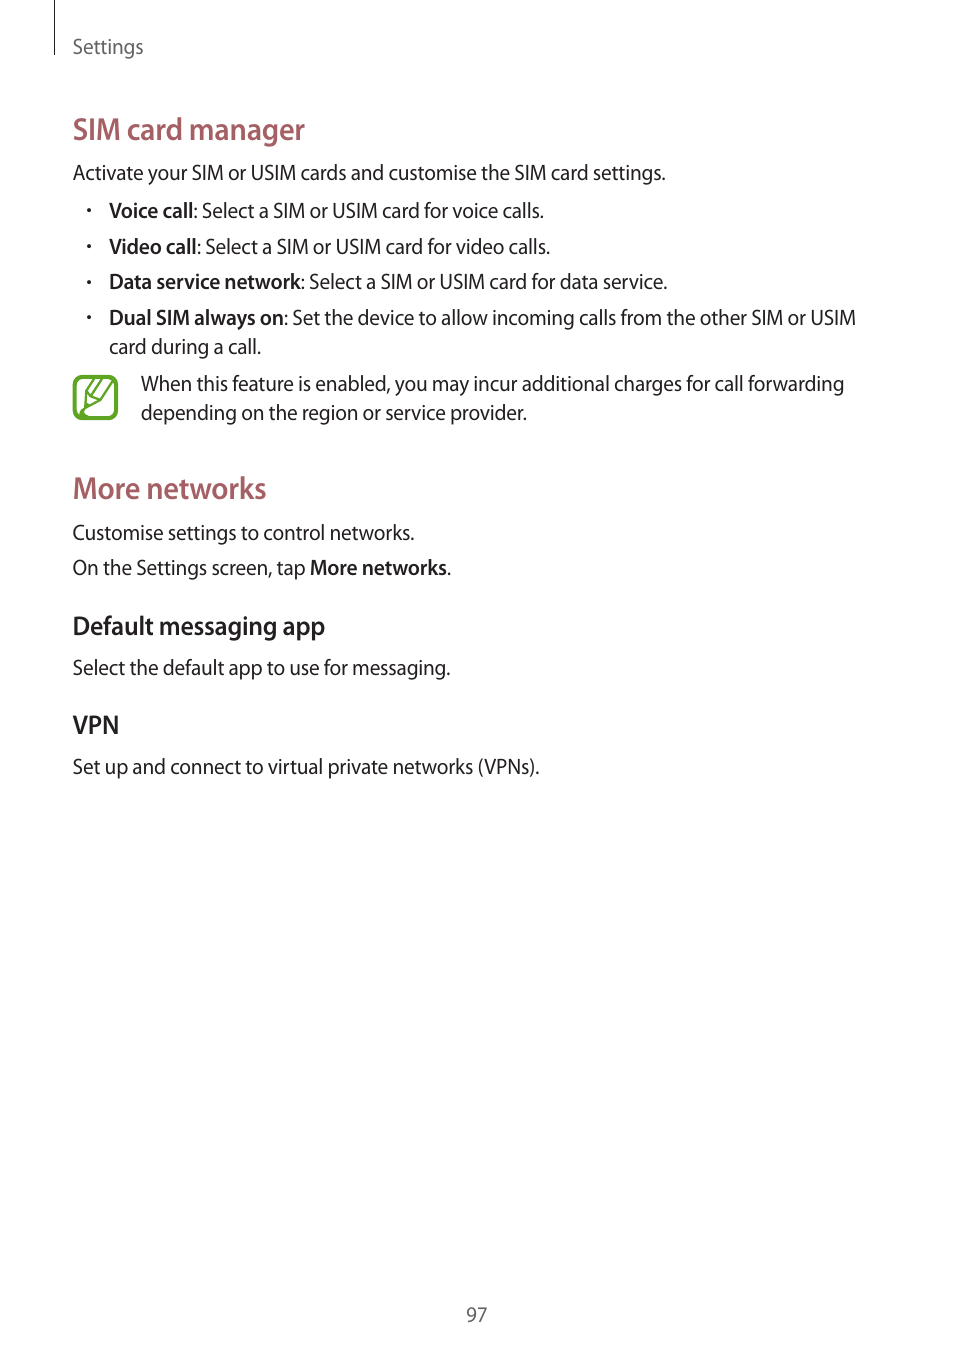 Sim card manager, More networks   Samsung Galaxy Grand Prime User